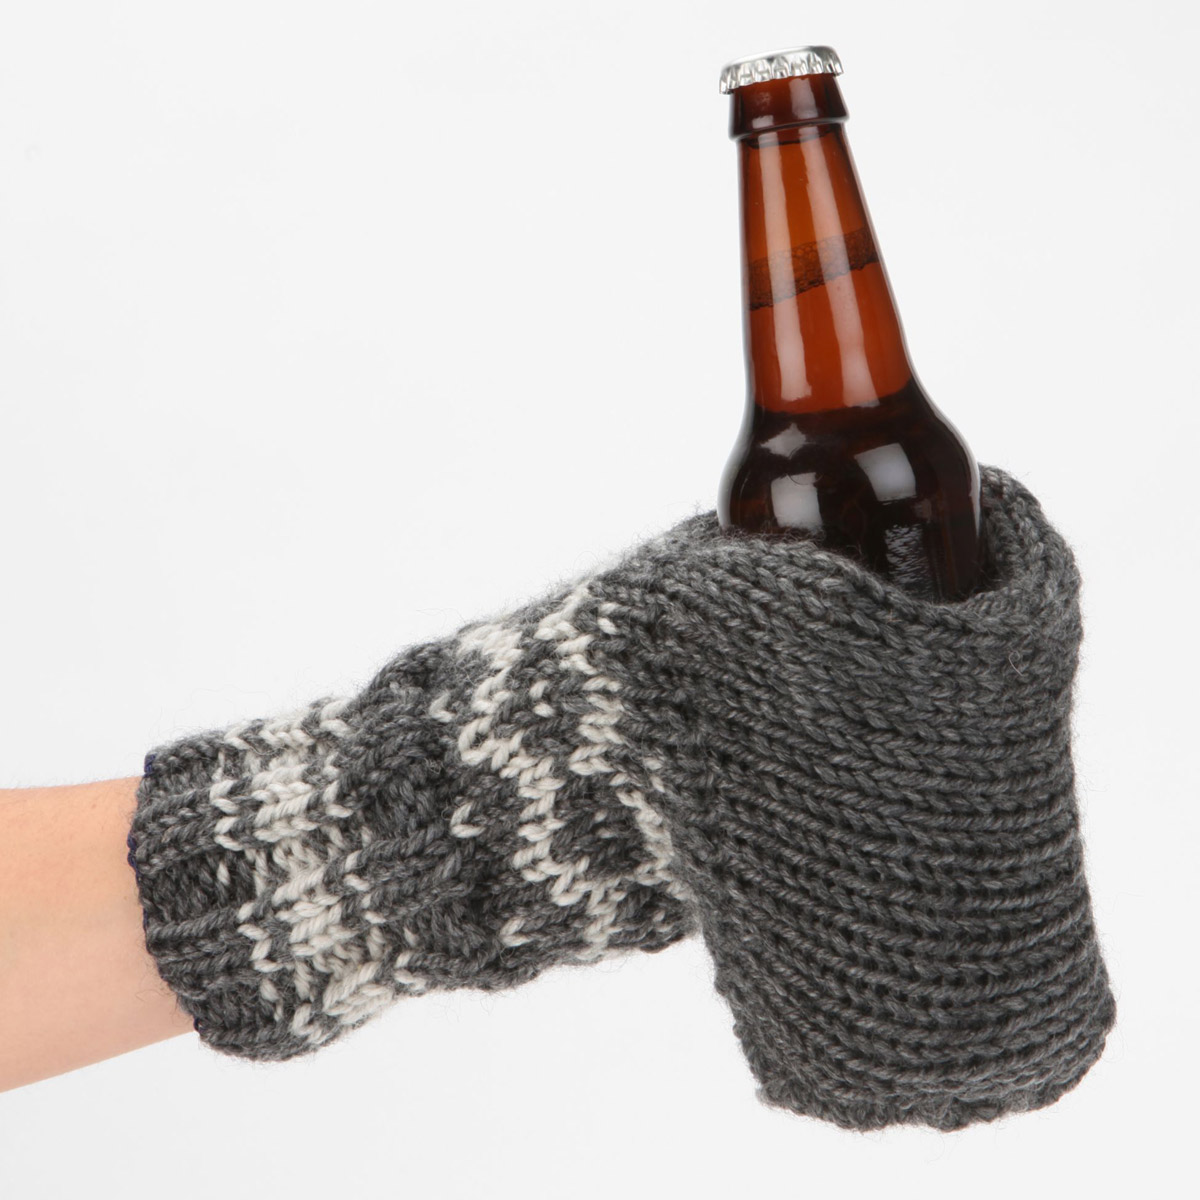 Knitting Pattern Cup Holder : Knit Glove Drink Holder - The Green Head